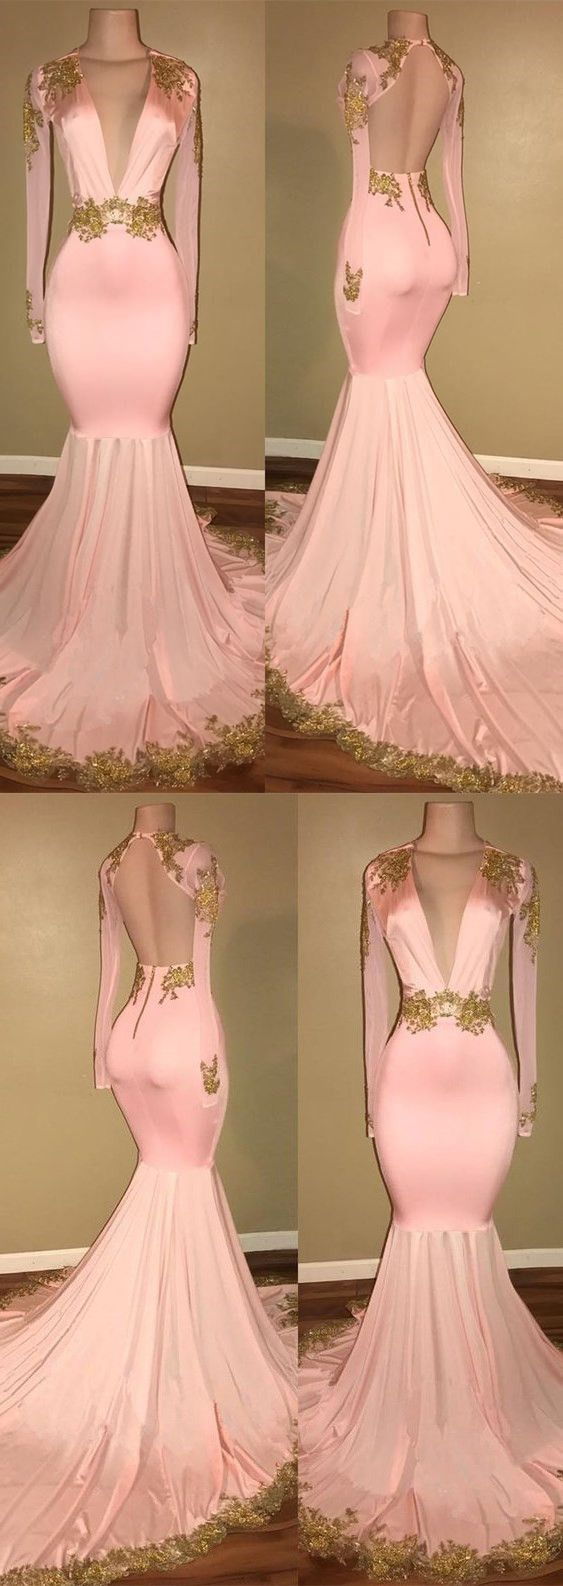 Gorgeous long sleeve vneck prom dress mermaid with gold